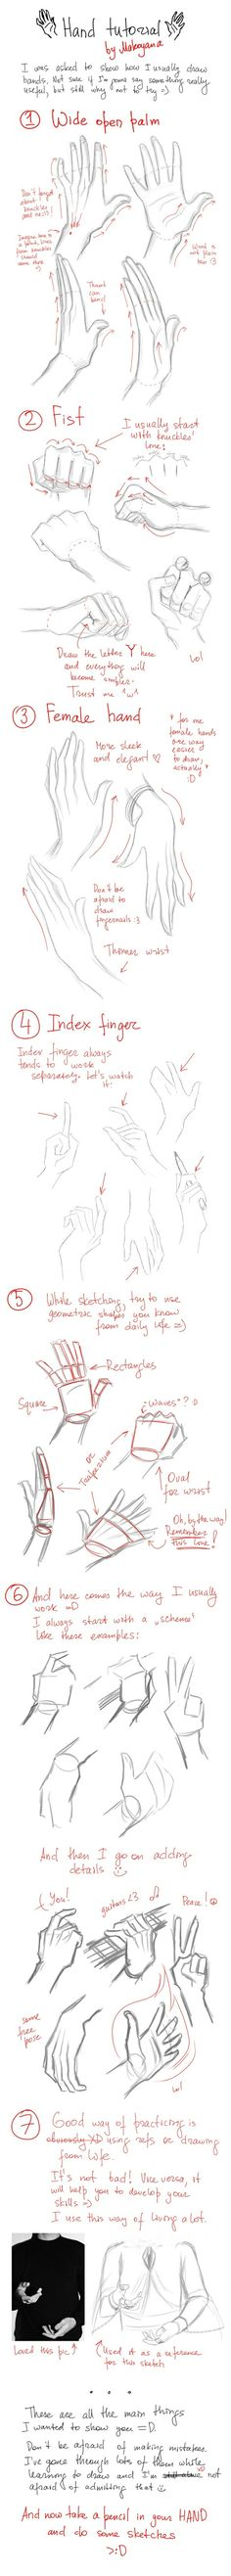 Hände zeichnen lernen Hands tutorial (Hands are the worst, this will definitely come in handy. No pun intended) Drawing Techniques, Drawing Tips, Drawing Sketches, Painting & Drawing, Art Drawings, Drawing Hands, Drawing Ideas, Sketching, Drawing Lessons